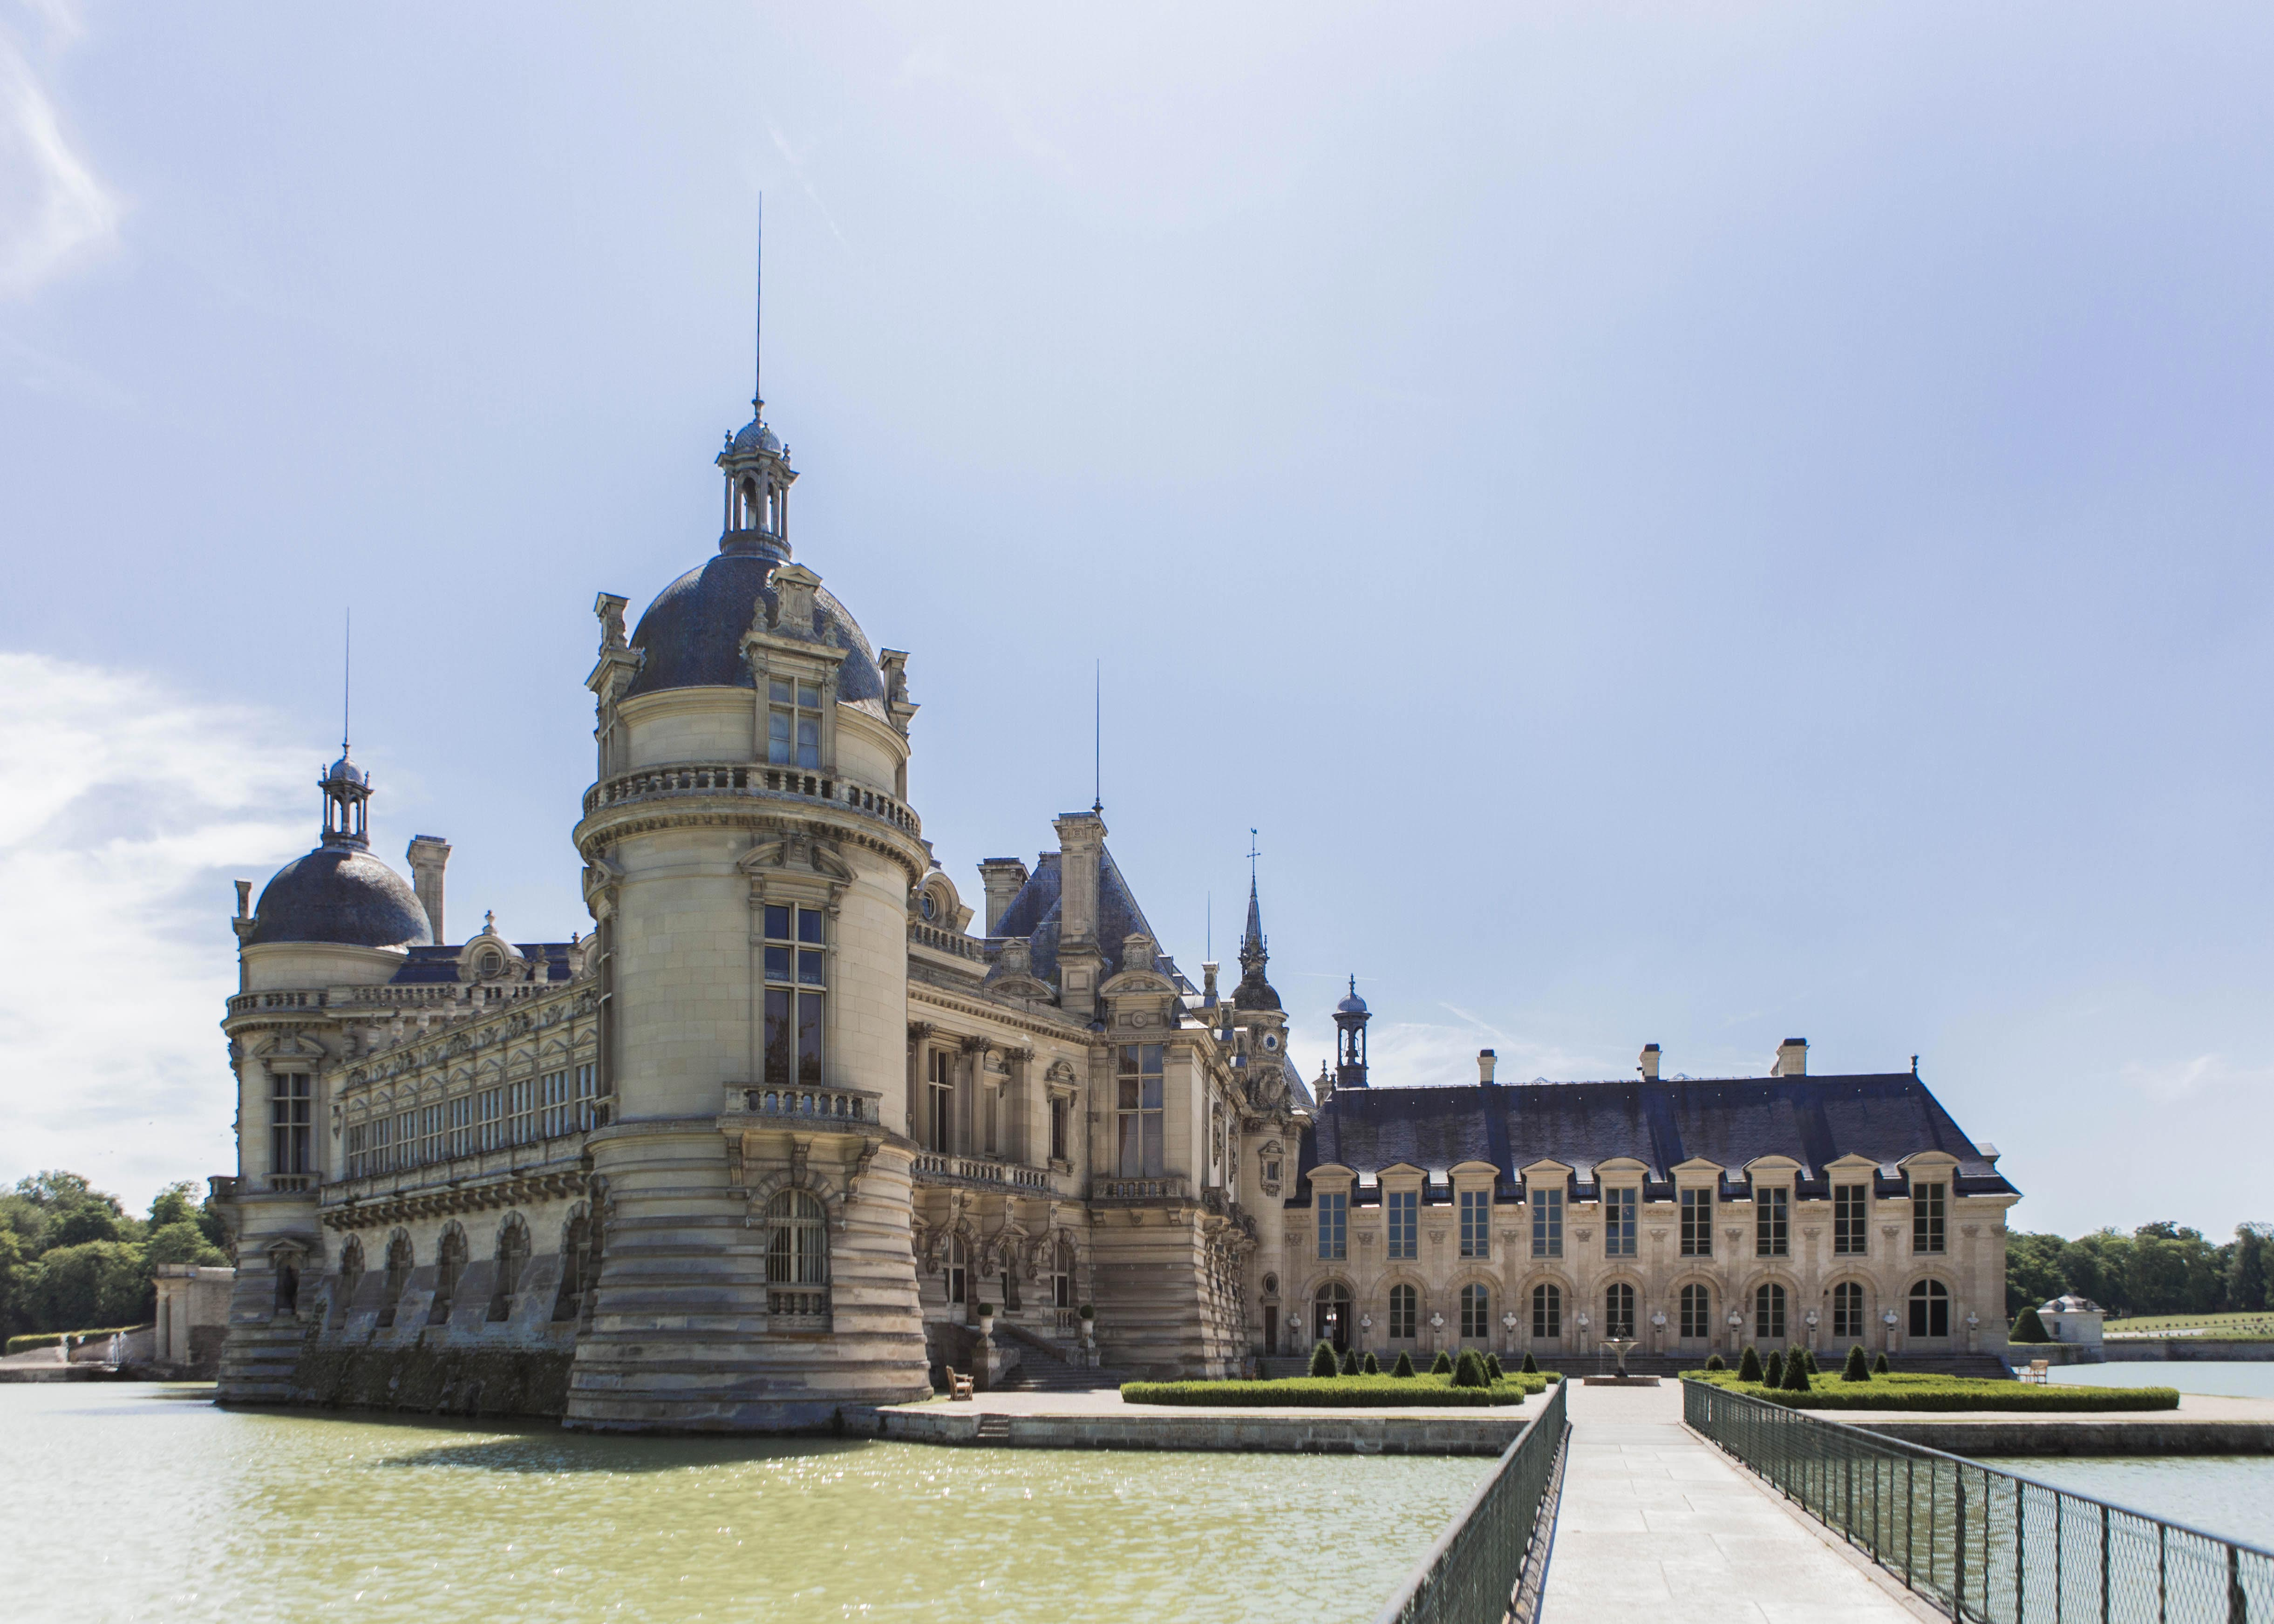 https://www.obonparis.com/uploads/CHATEAU%20DE%20CHANTILLY/Chateau%20de%20Chantilly%20%286%29.jpg